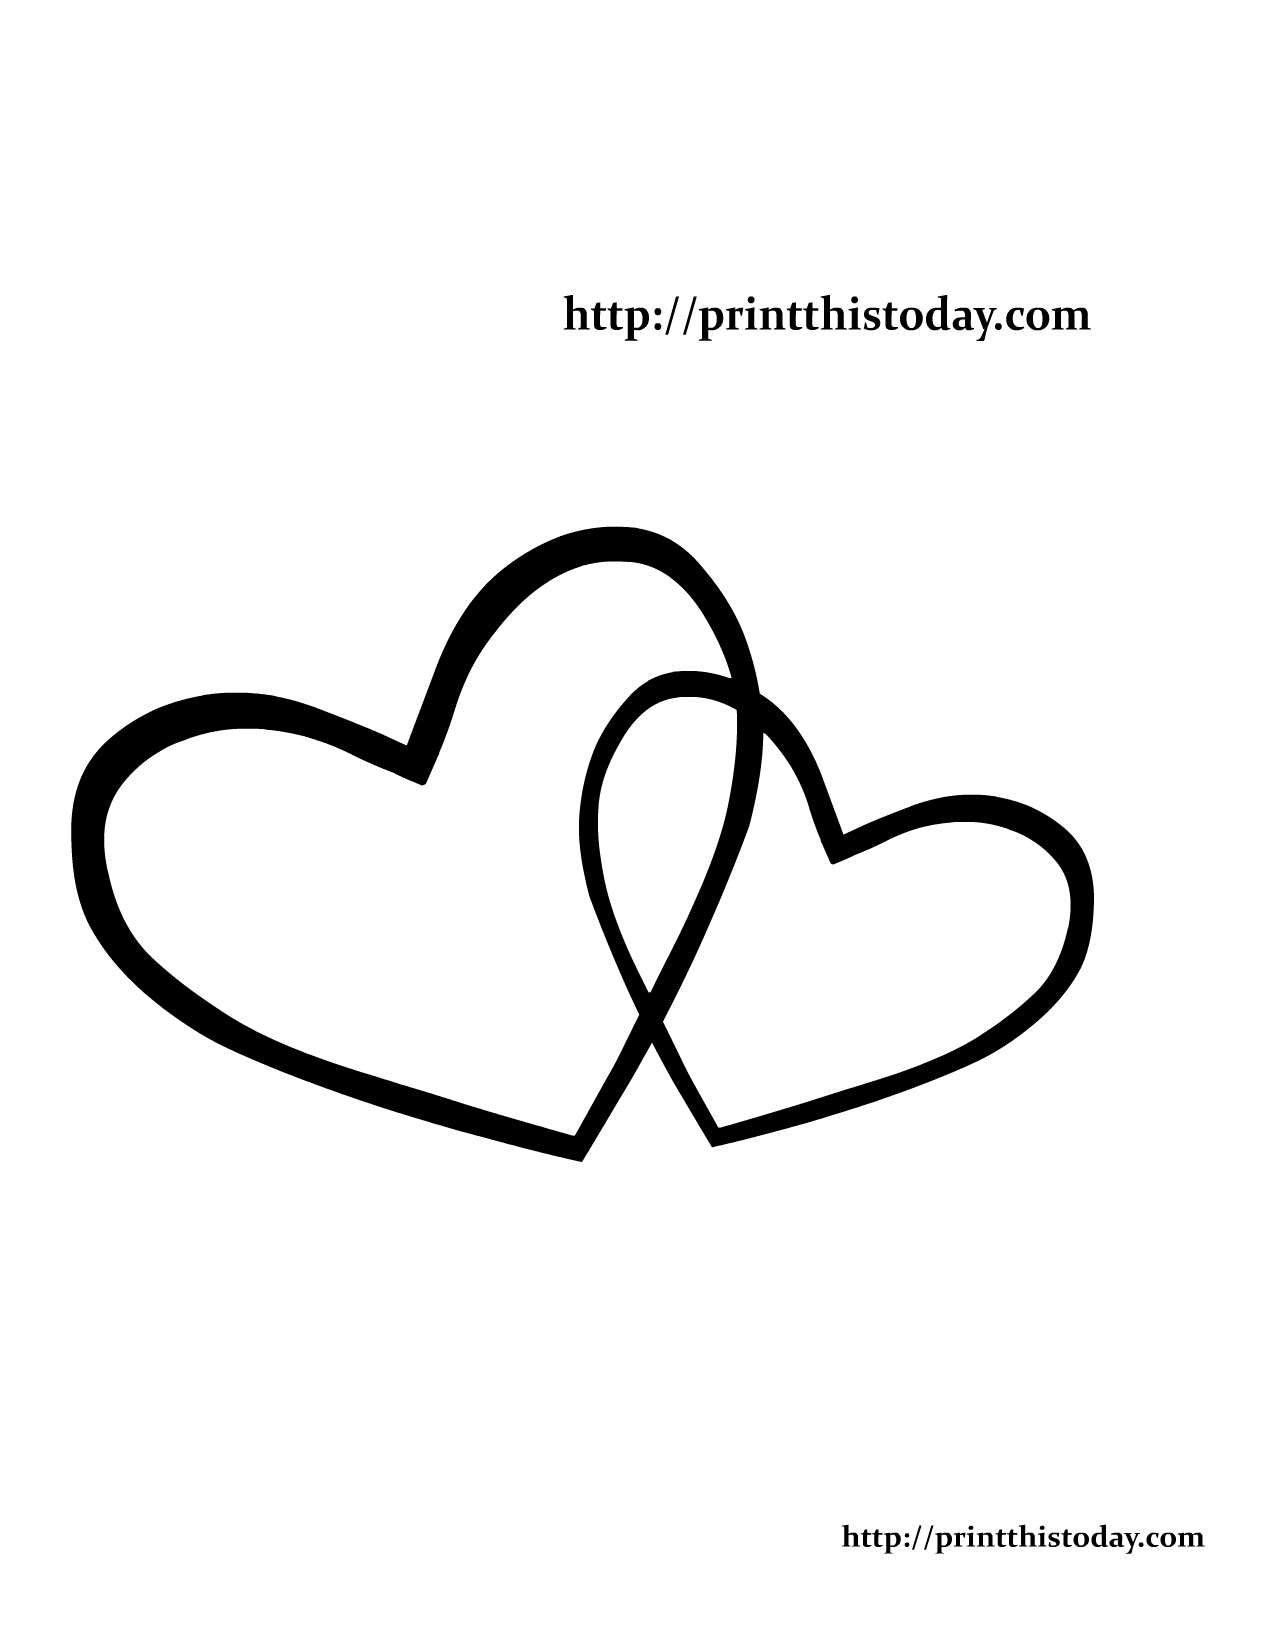 double heart coloring pages - photo#35